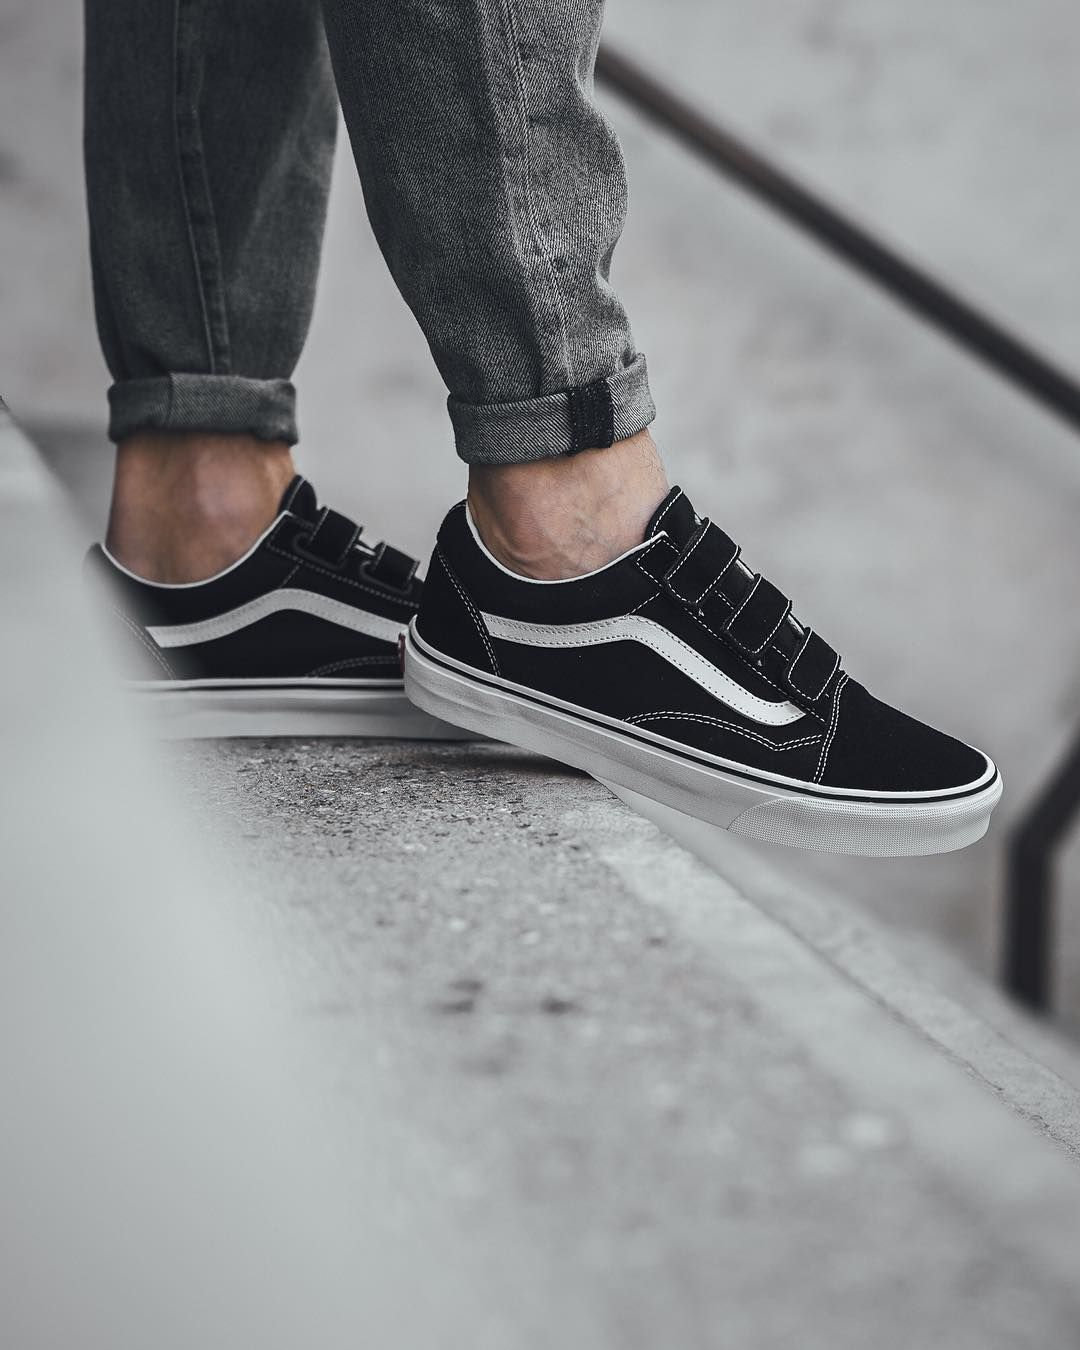 Old The BlackwhiteOff WallIn 2019 Vans Velcro Skool qVSMzGUp